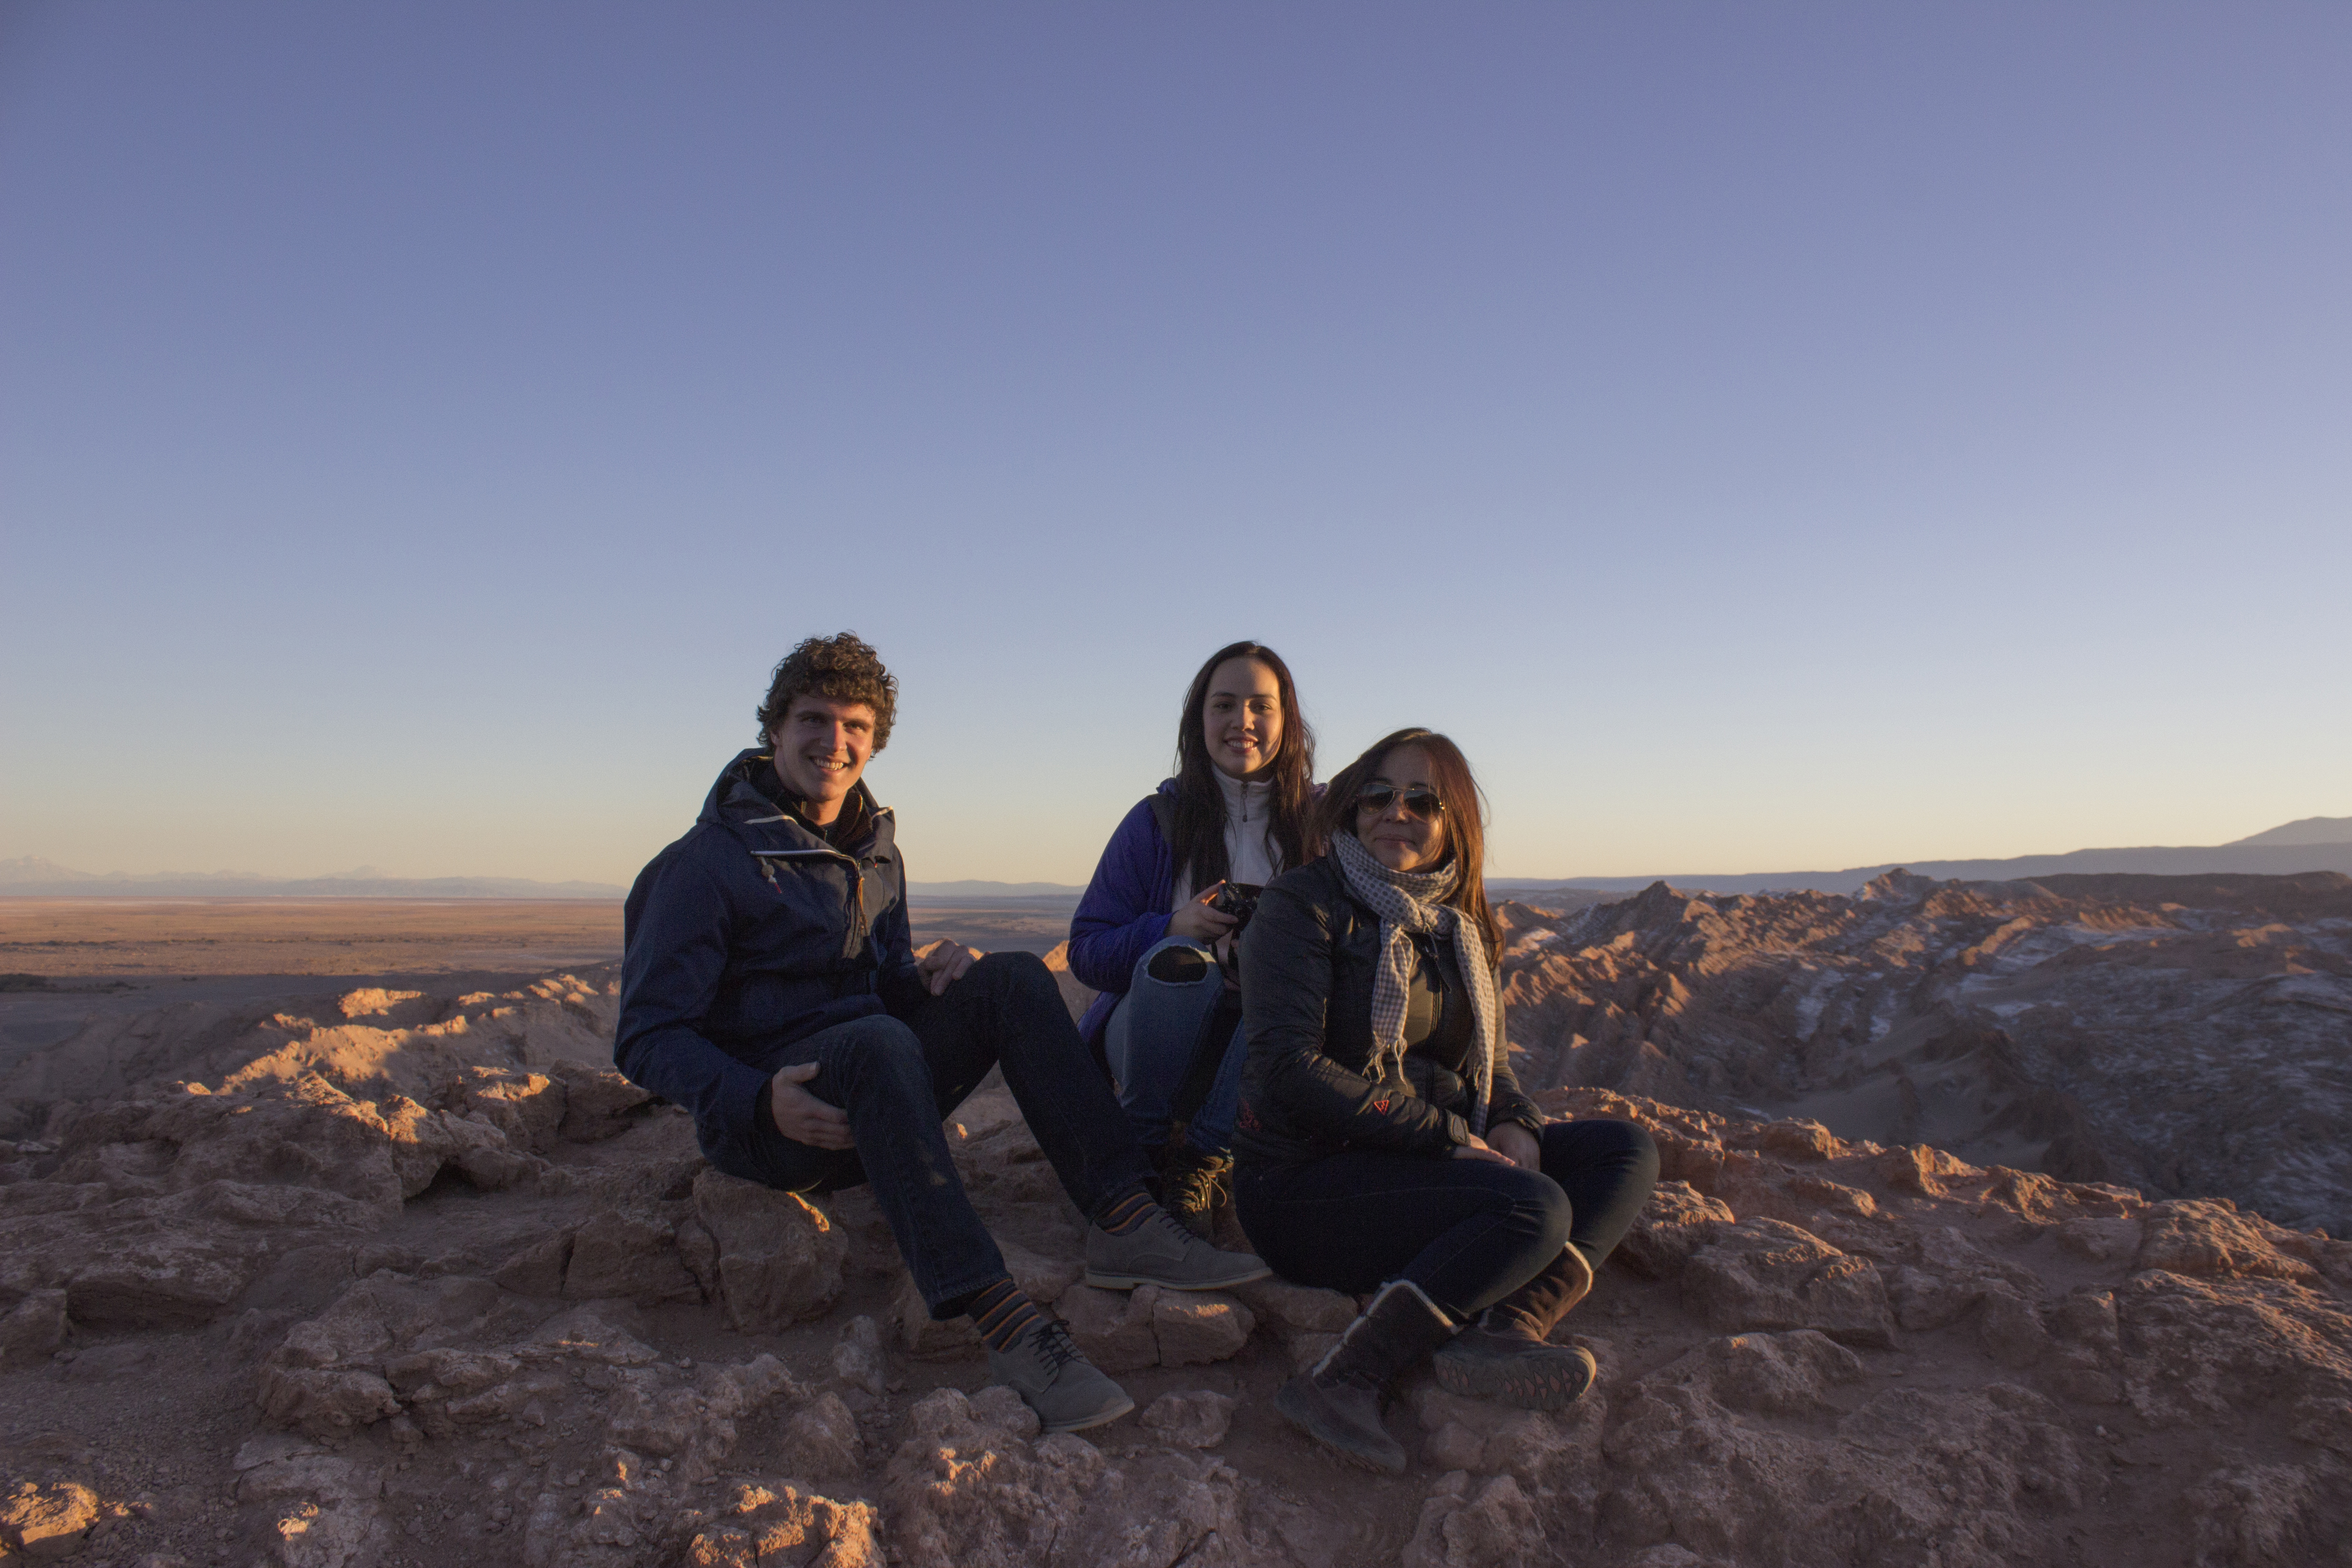 Family vacation to the Atacama Desert in northern Chile with host family. From left to right: Connor Yocum, Javiera Olivares, Pamela Mendel.